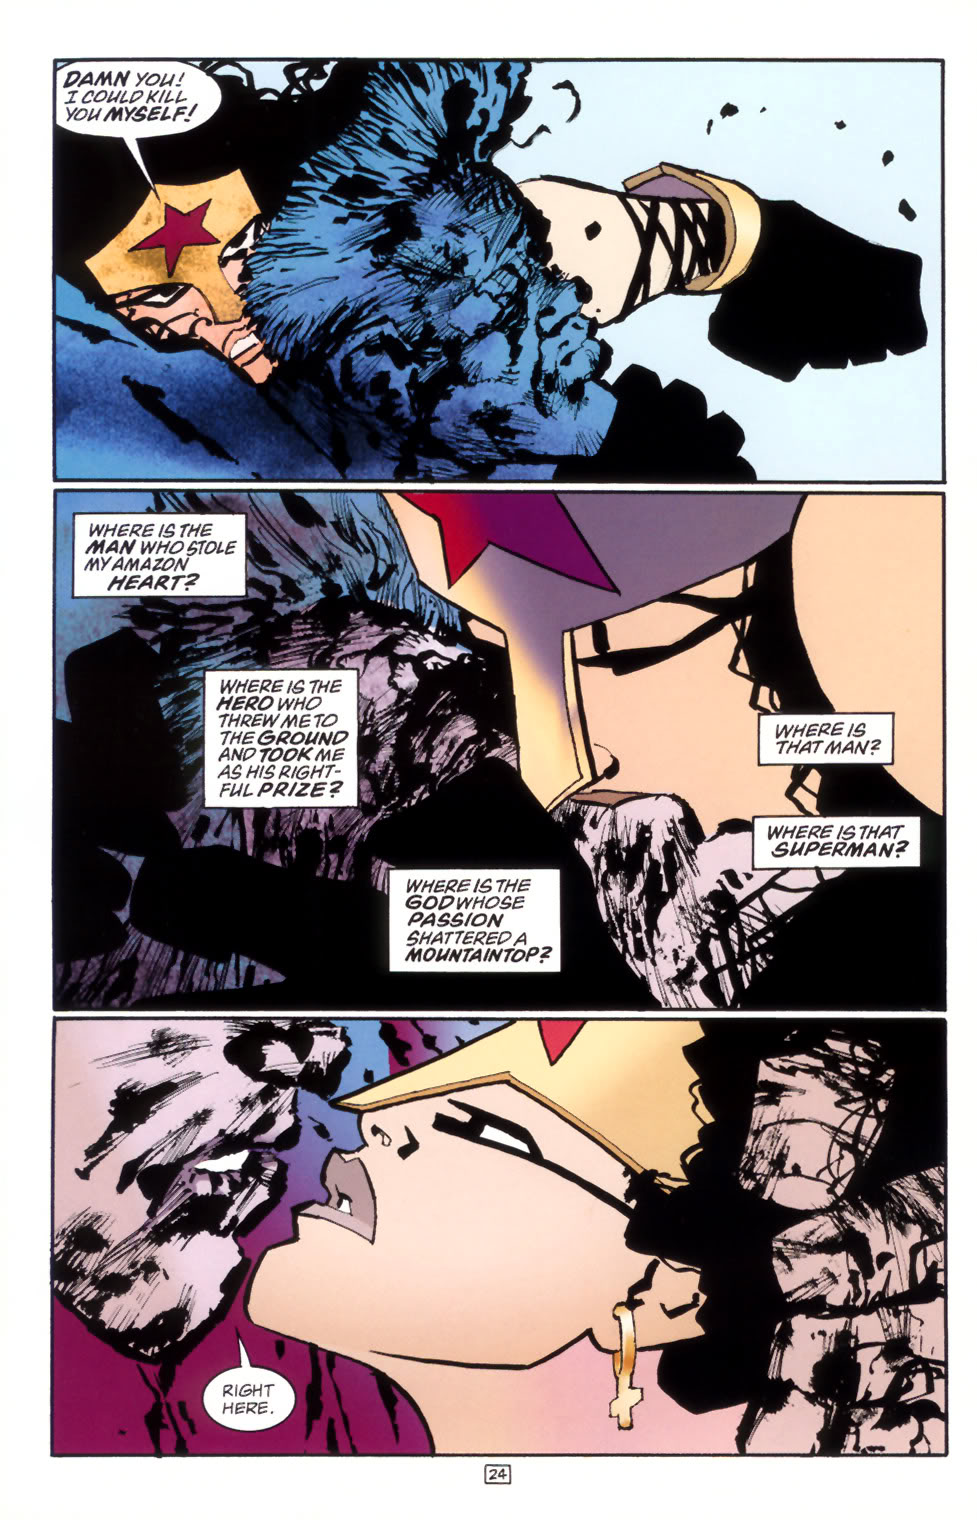 graphic nyc frank miller part 2 on pastiche directing and the lara at stake superman finally finds the courage to become super once more strikes again can just as easily be called the man of steel returns